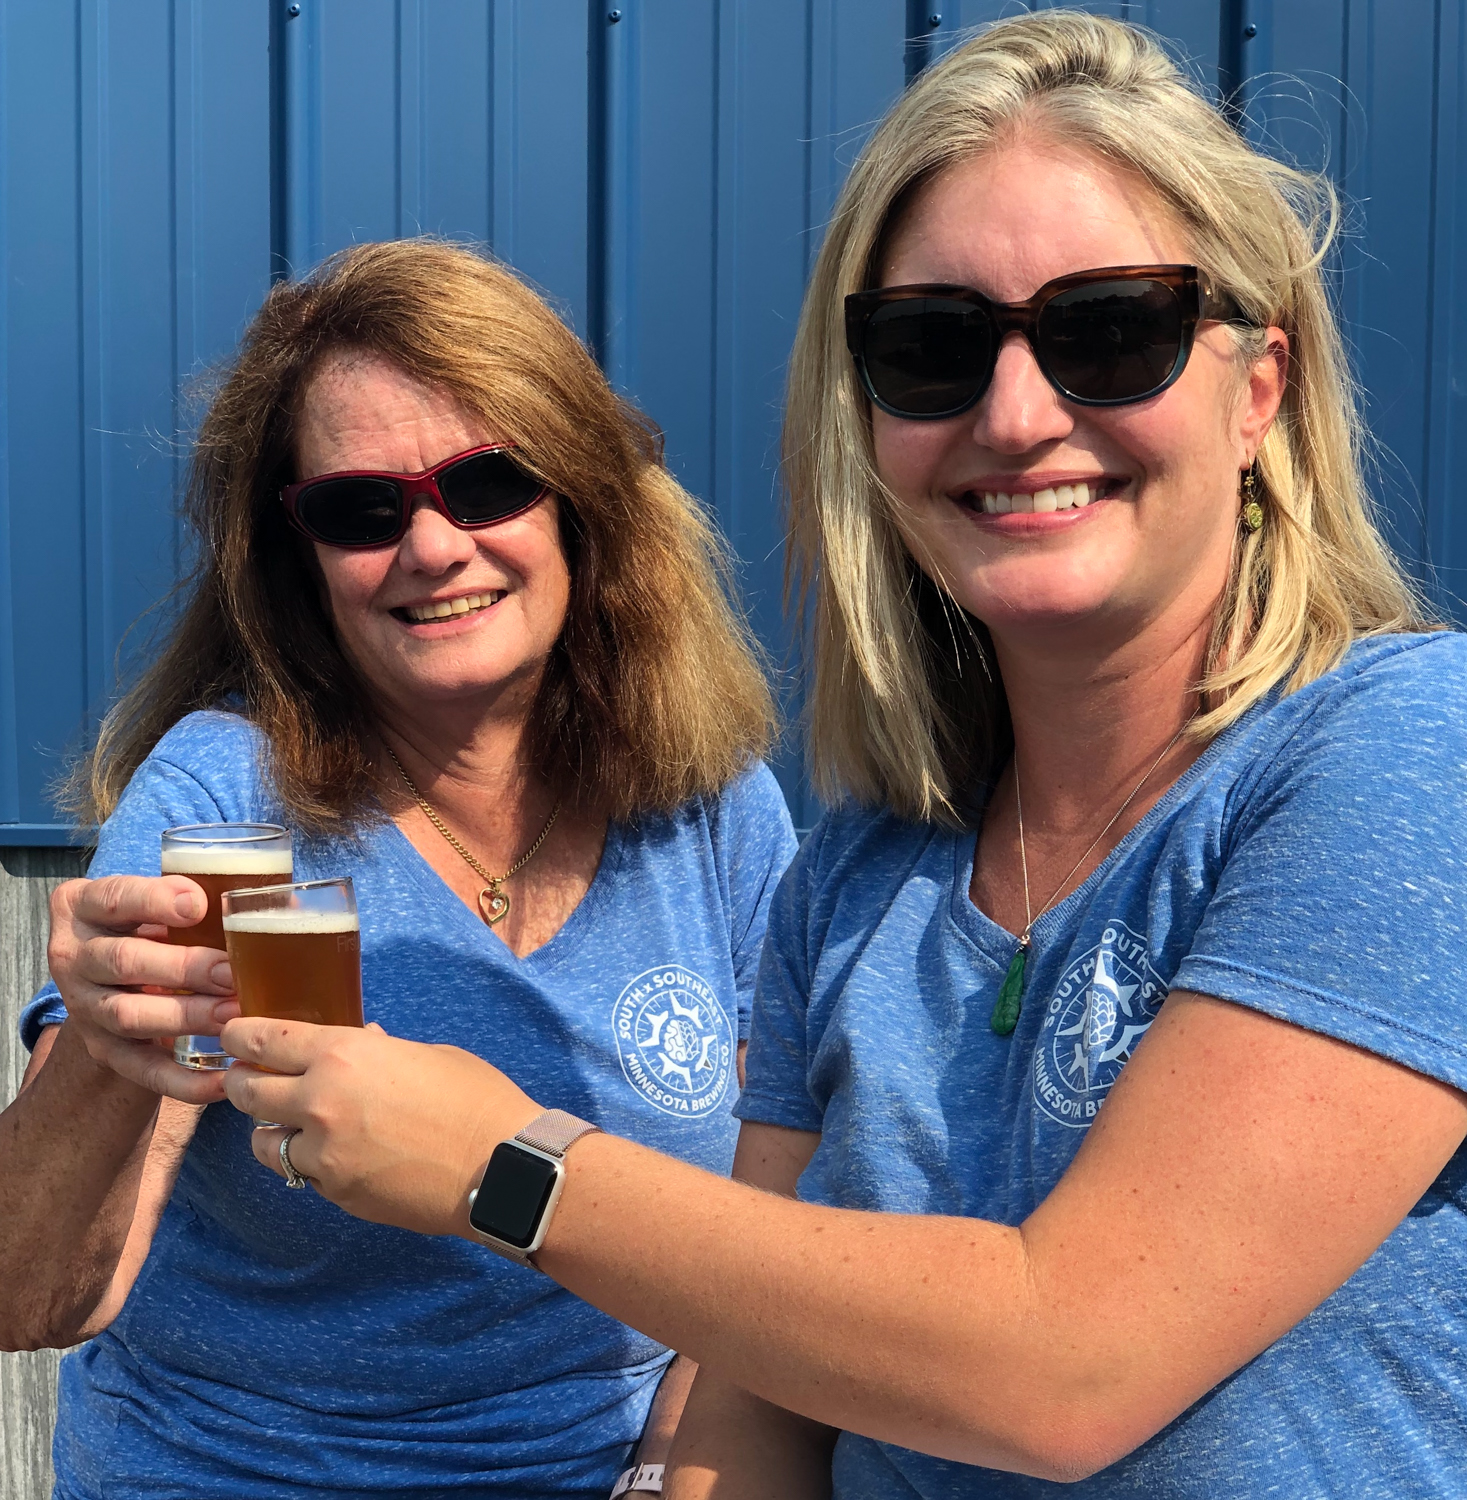 SxSE Brewery owners Ann Fahy-Gust (left) and Tessa Leung // Photo via SxSE Brewery